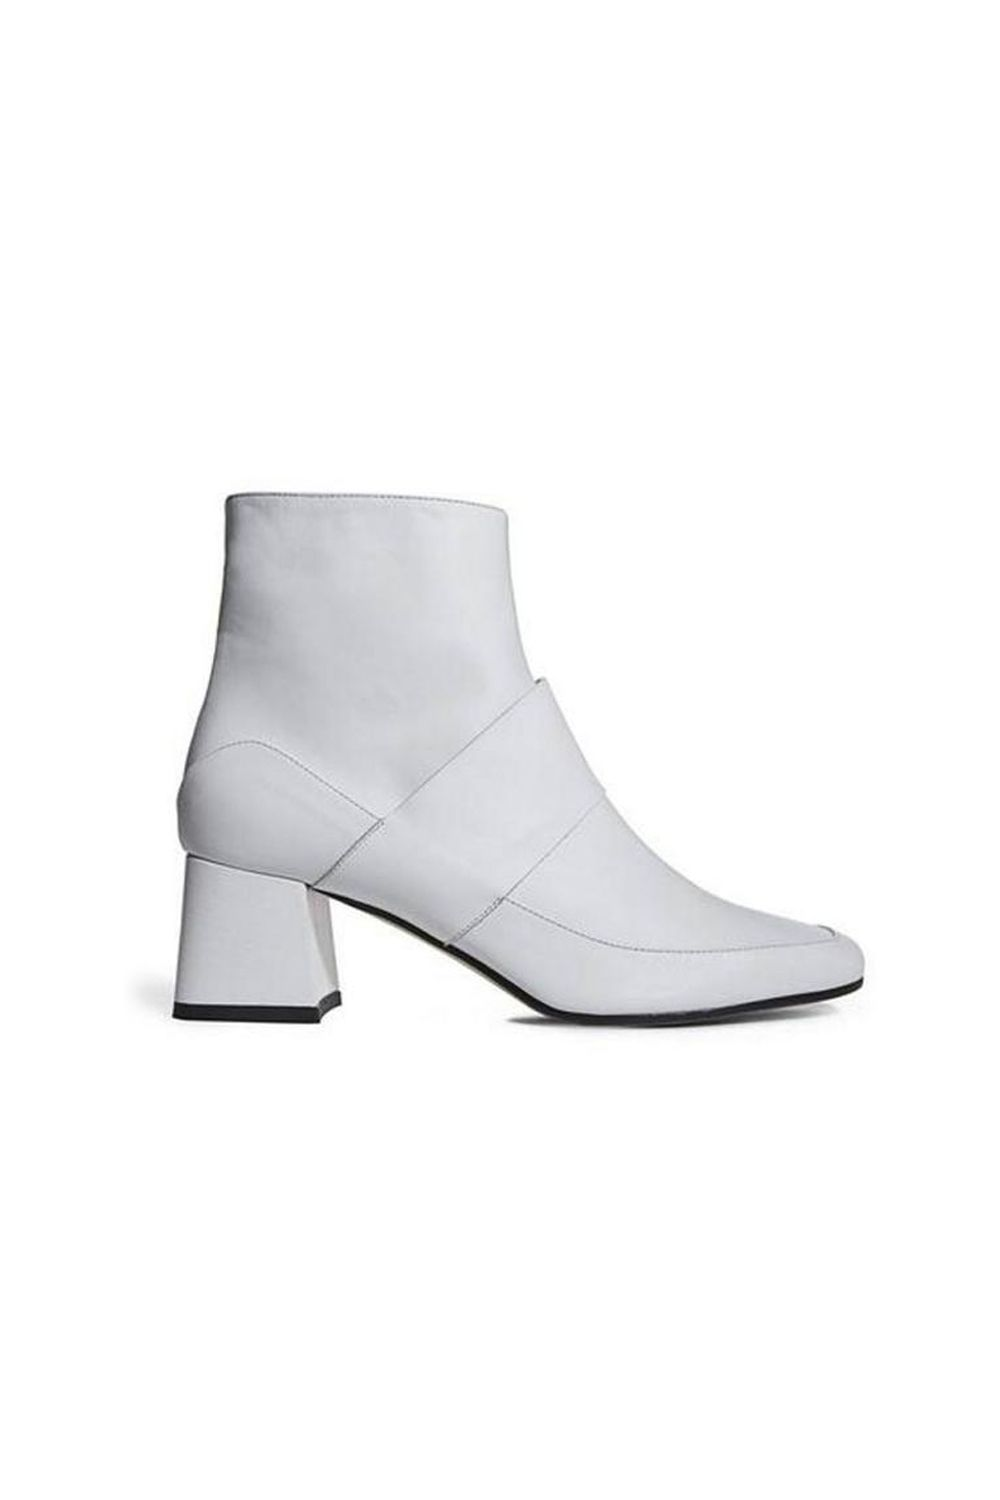 "<p>Shout it from the rooftops: Get you a white boot. </p><p><em data-redactor-tag=""em"" data-verified=""redactor"">ASKA Collection, $450</em><span class=""redactor-invisible-space"" data-verified=""redactor"" data-redactor-tag=""span"" data-redactor-class=""redactor-invisible-space""><em data-redactor-tag=""em"" data-verified=""redactor""></em></span><br></p><p><strong data-redactor-tag=""strong"" data-verified=""redactor"">BUY IT: <a href=""https://askacollection.com/collections/booties/products/goldie?variant=26325228678"" target=""_blank"">askacollection.com</a>.</strong></p>"